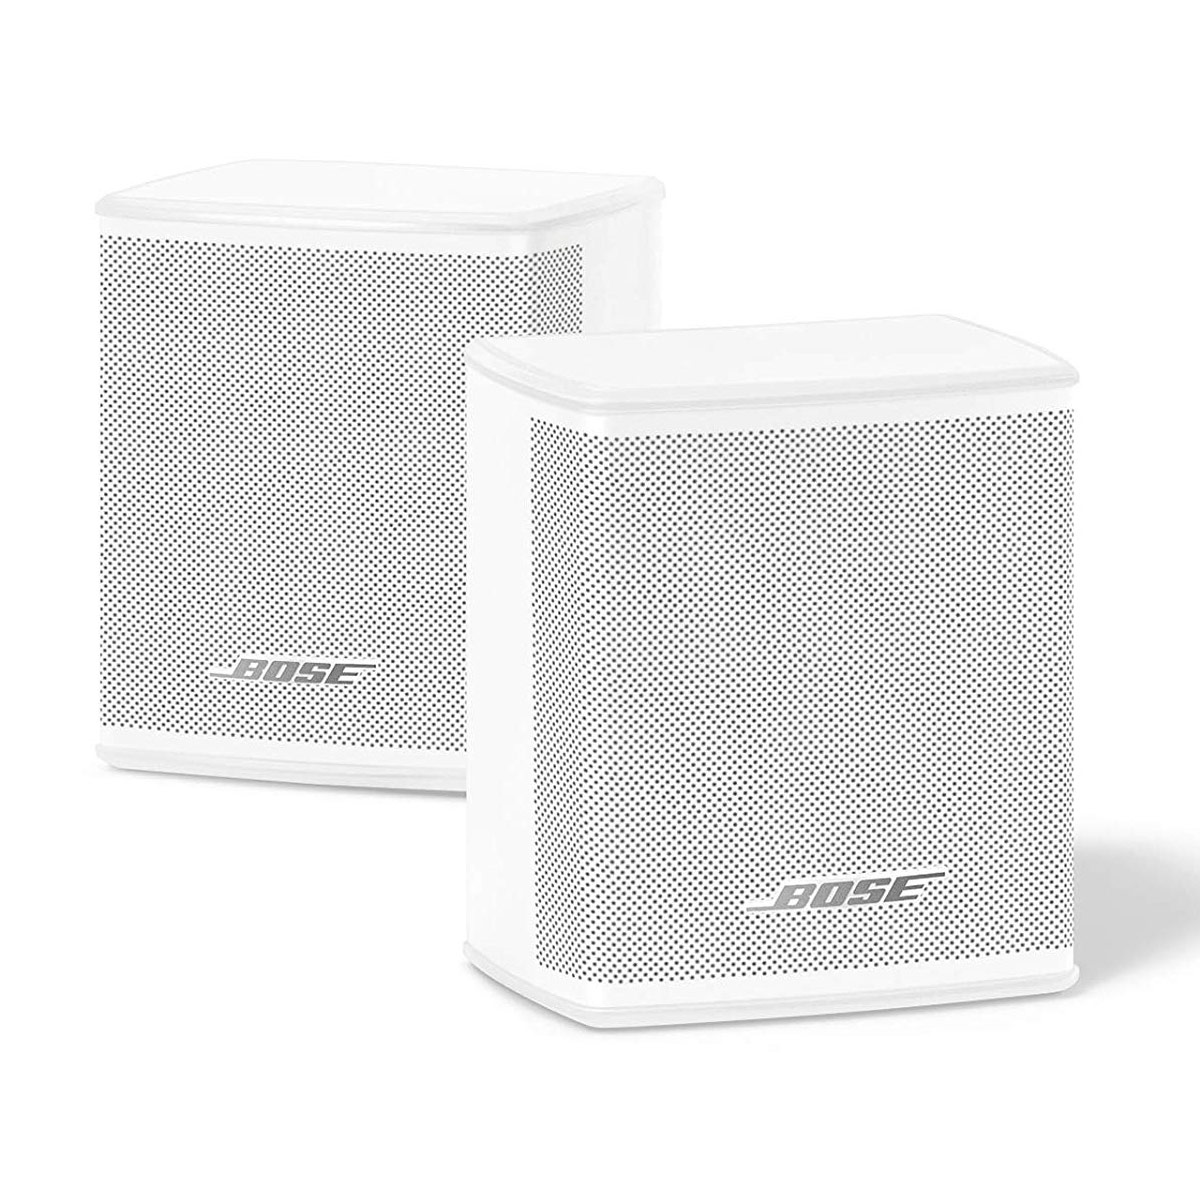 Enceintes Hifi Bose Surround Speakers Blanc Enceintes surround sans fil pour barre de son Bose Soundbar 500 et Soundbar 700